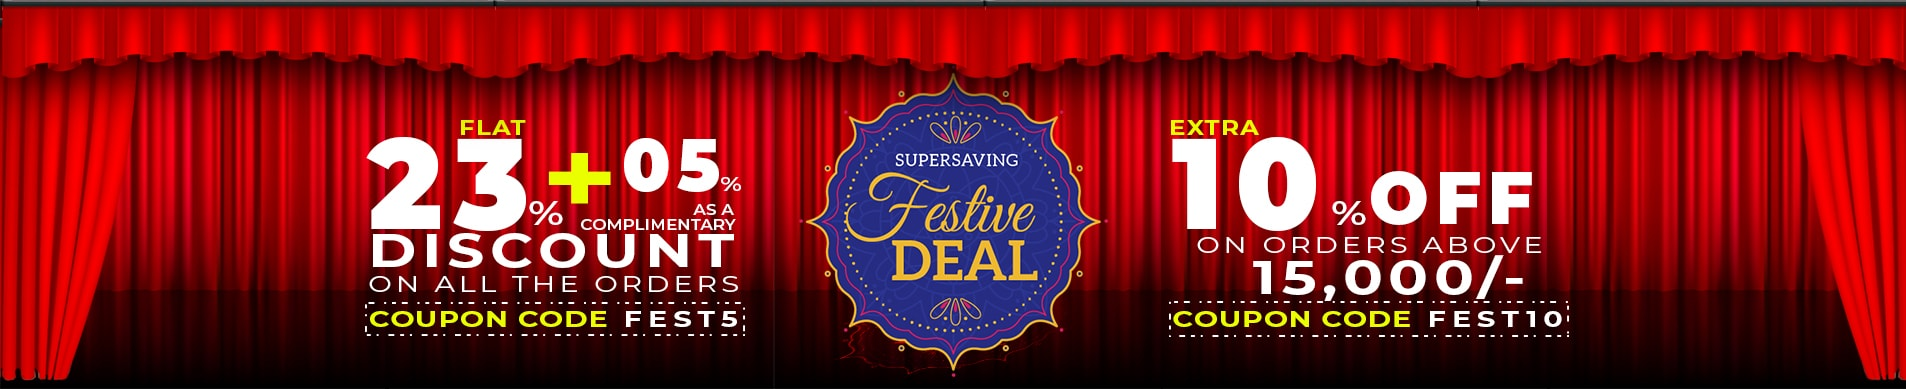 Super Saving Festive Deal - Flat 23% discount on all our products and additionally 5% as a complimentary discount on all the orders